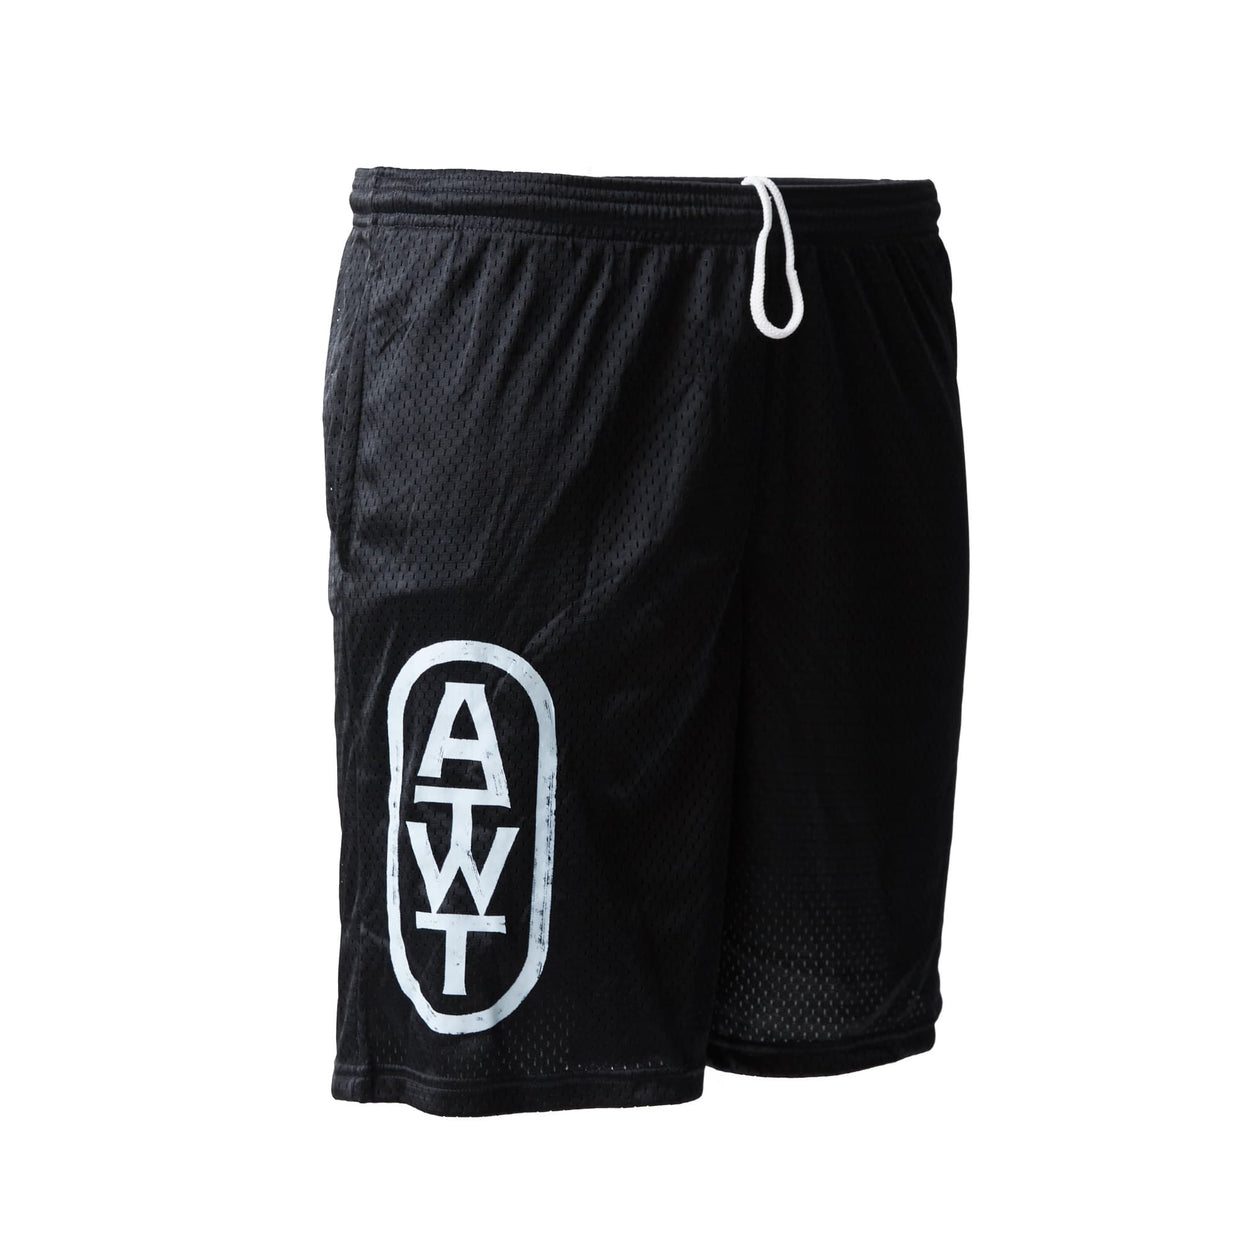 'All Things Work Together' Basketball Shorts